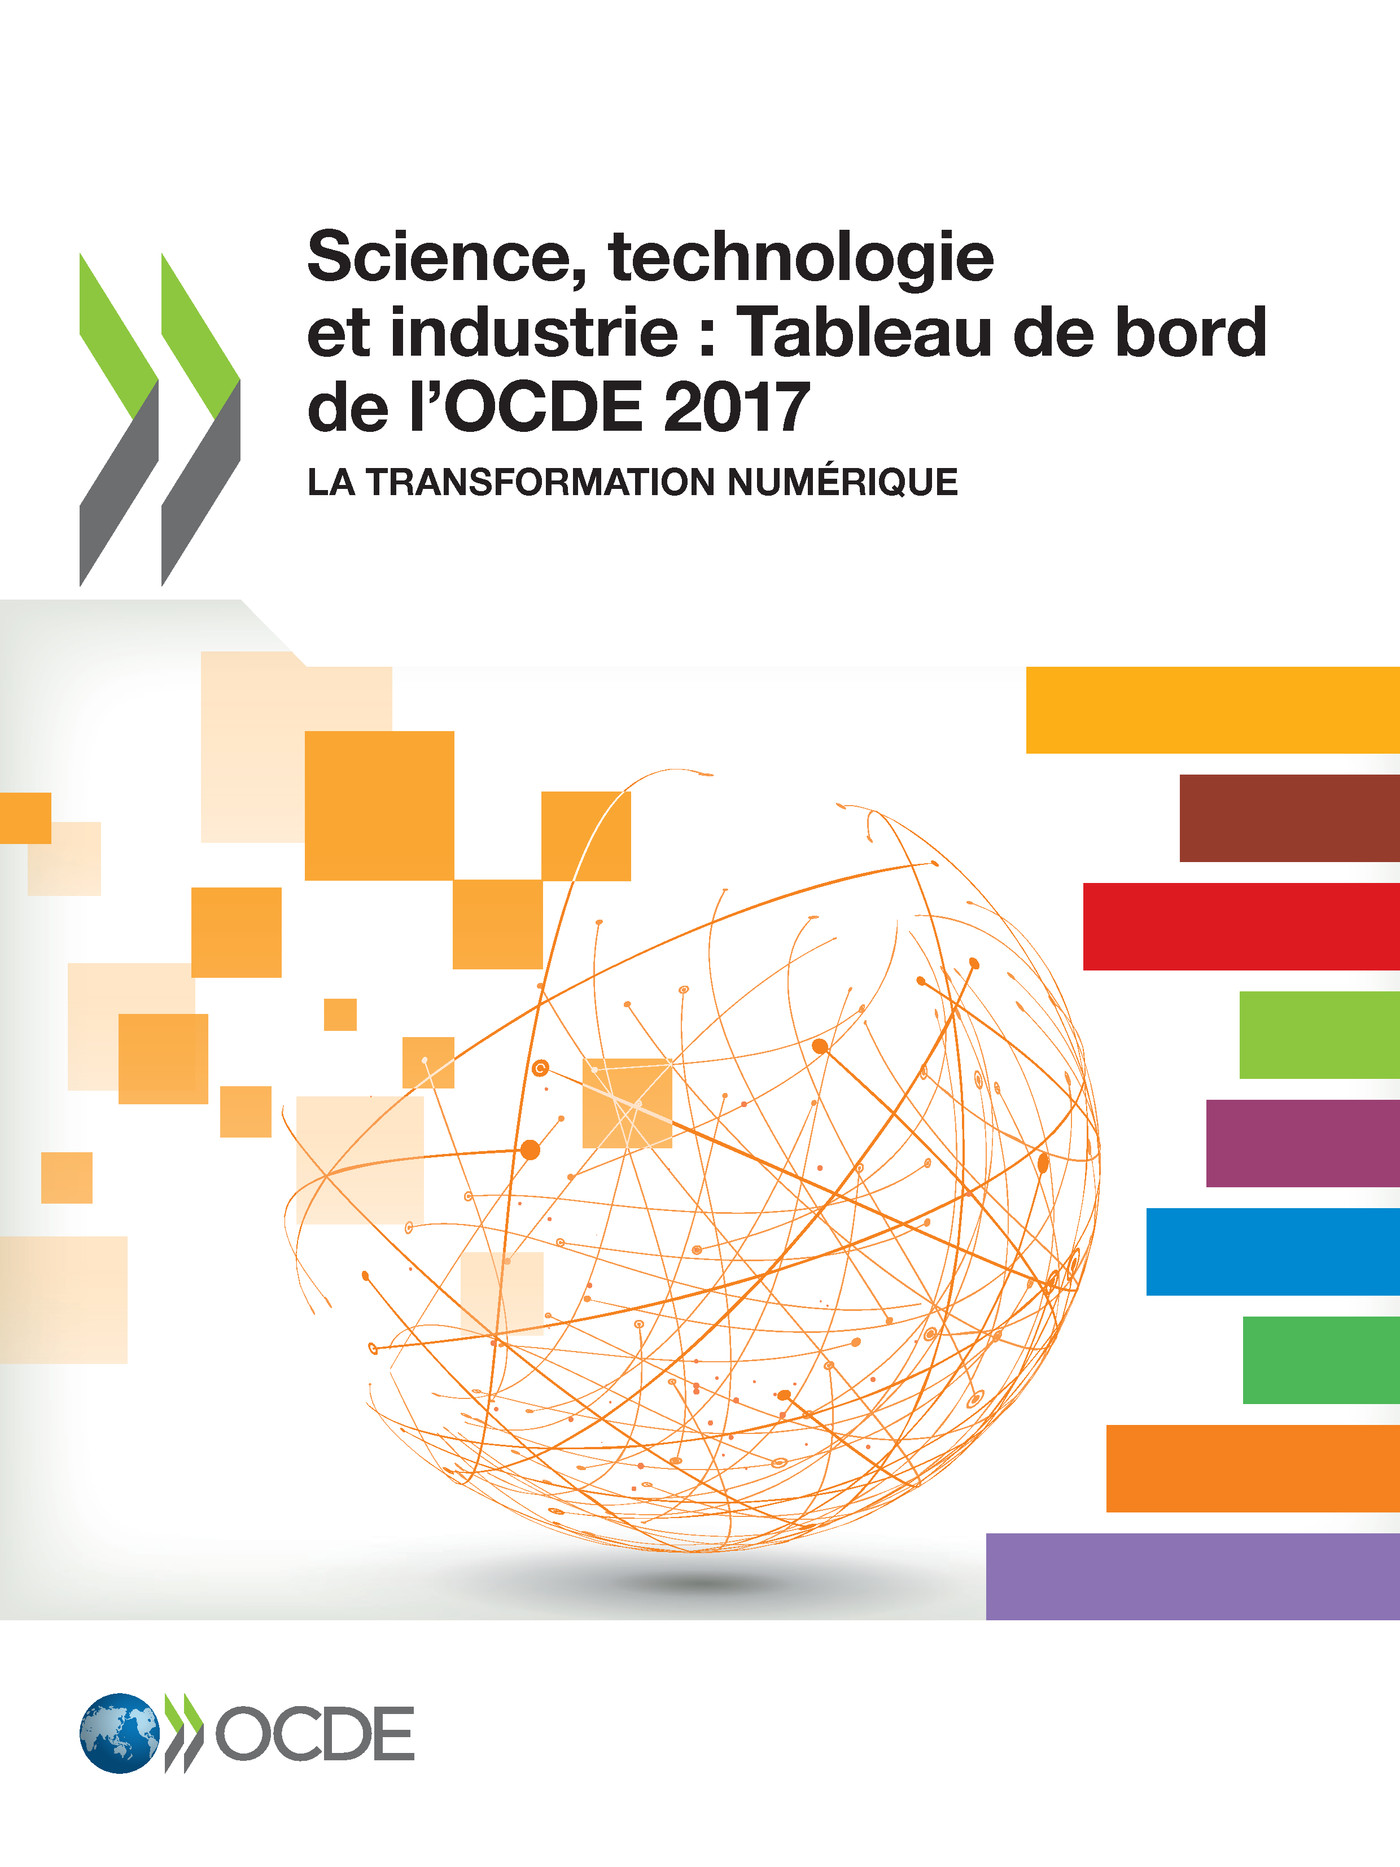 Science, technologie et industrie : Tableau de bord de l'OCDE 2017 De  Collectif - OCDE / OECD